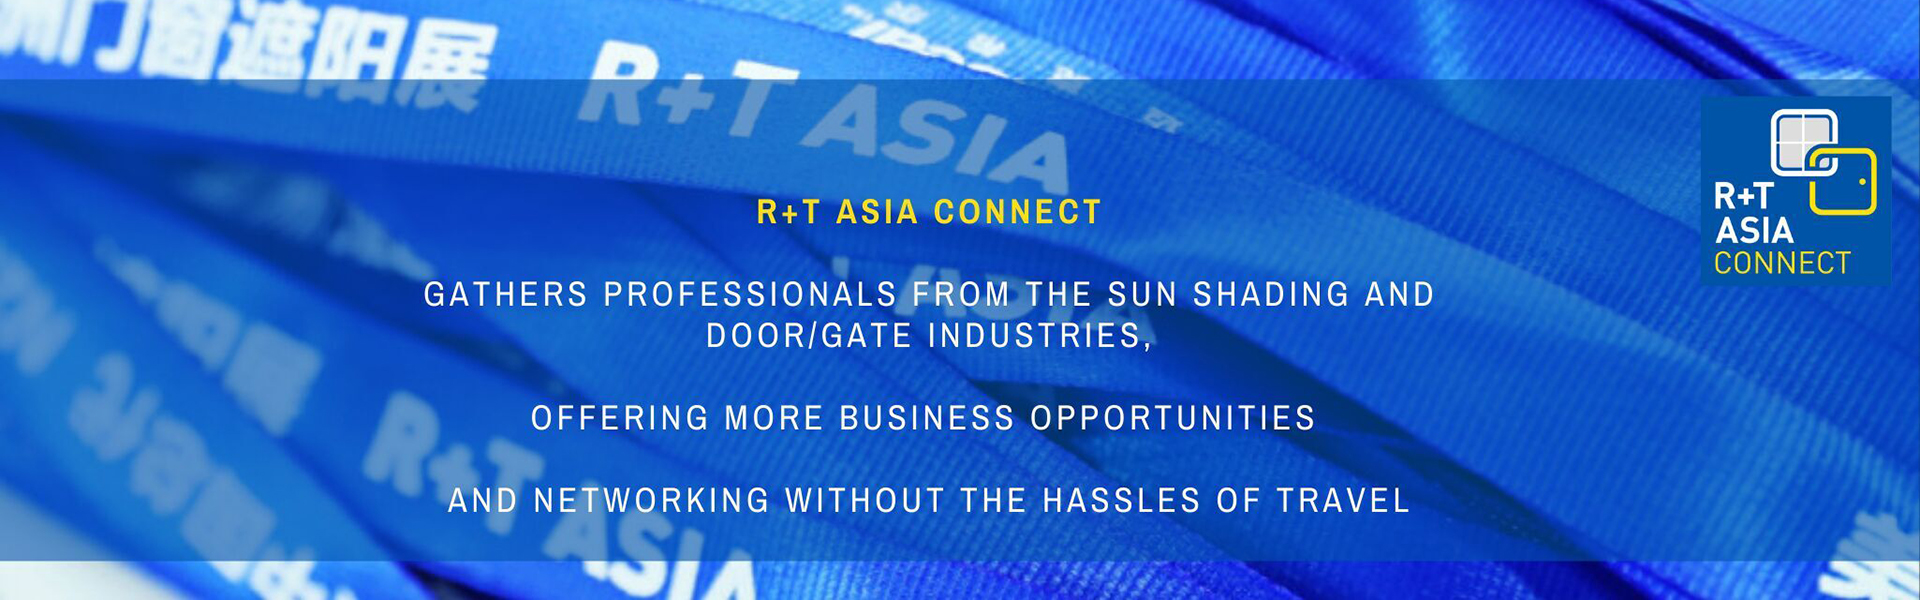 RT Asia Connect